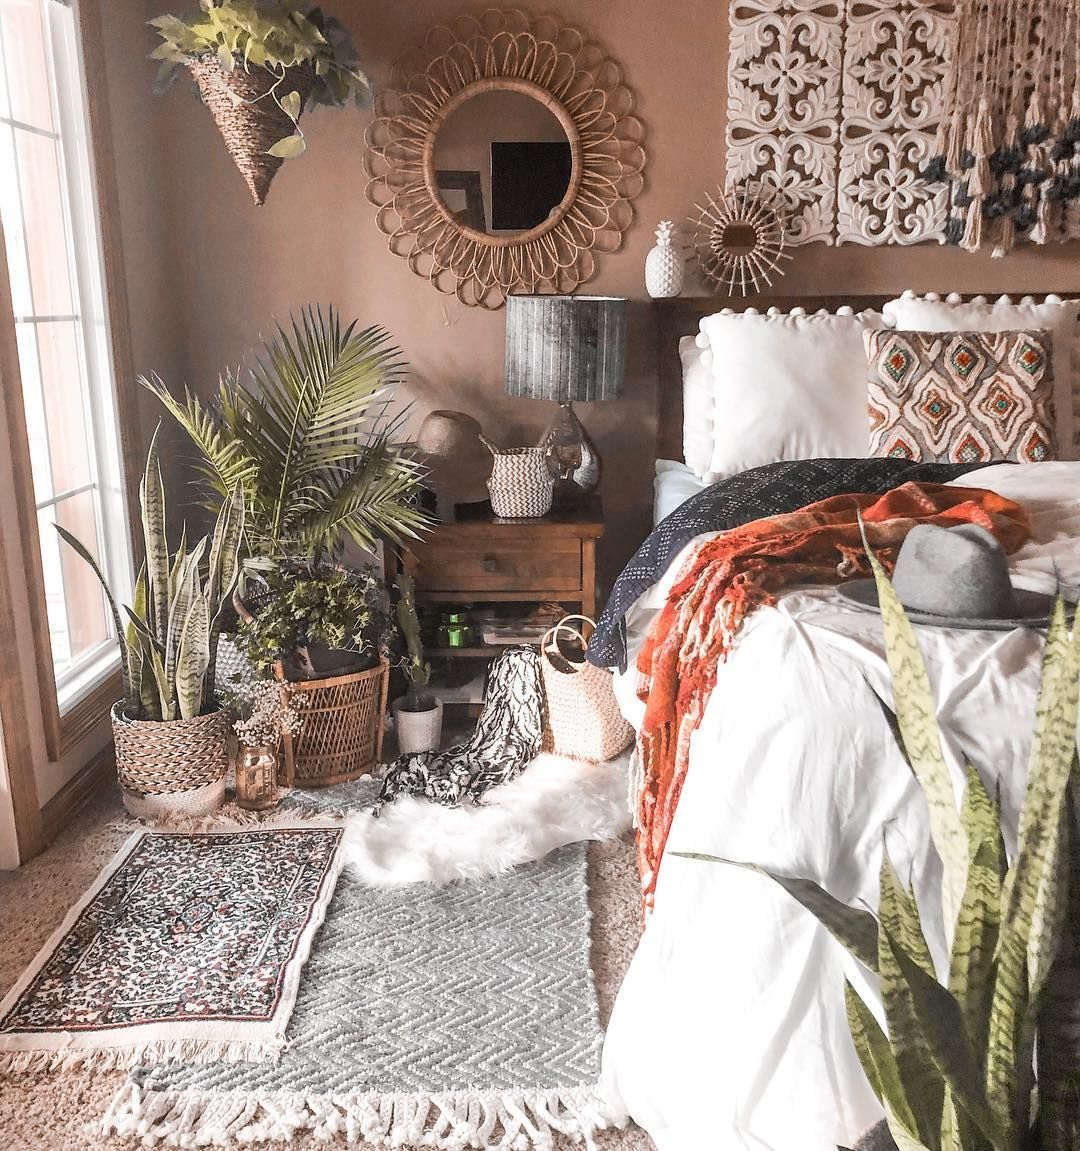 57 Bohemian Bedrooms That'll Make You Want to Redecorate ASAP #bohobedroom